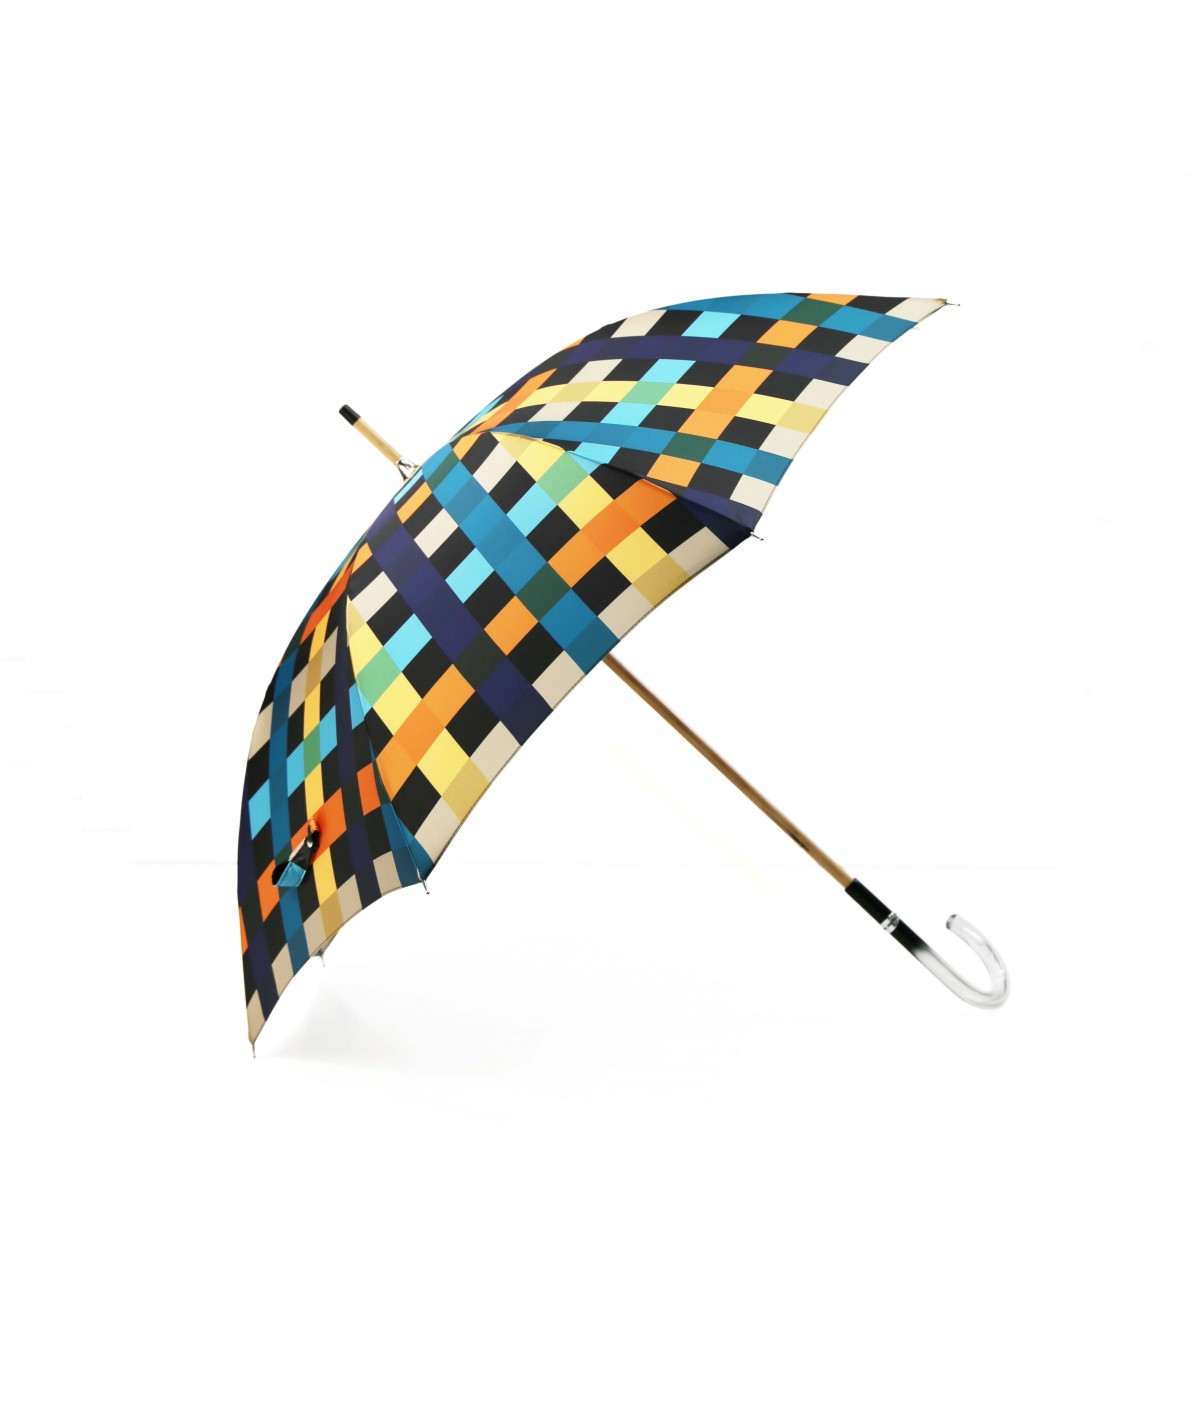 → Fancy Printed Satin Umbrella - Long Manual N°3 - Made in France by Maison Pierre Vaux French Umbrella Manufacturer